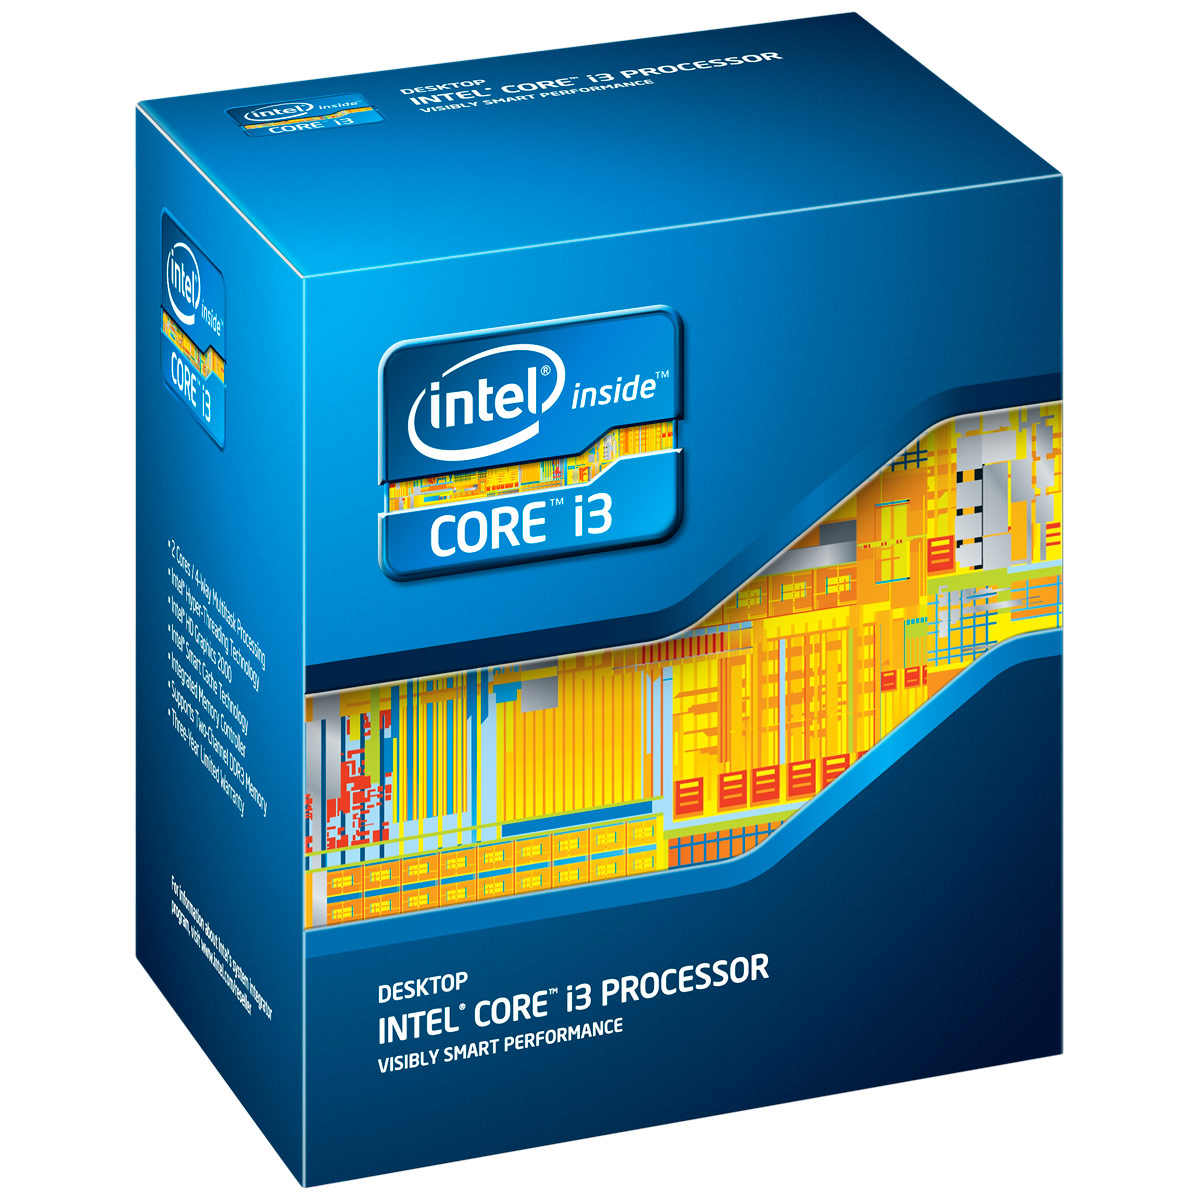 Processeur Intel Core i3-2100T (2.5 GHz) Processeur Dual Core Socket 1155 Cache L3 3 Mo Intel HD Graphics 2000 0.032 micron (version boîte - garantie Intel 3 ans)